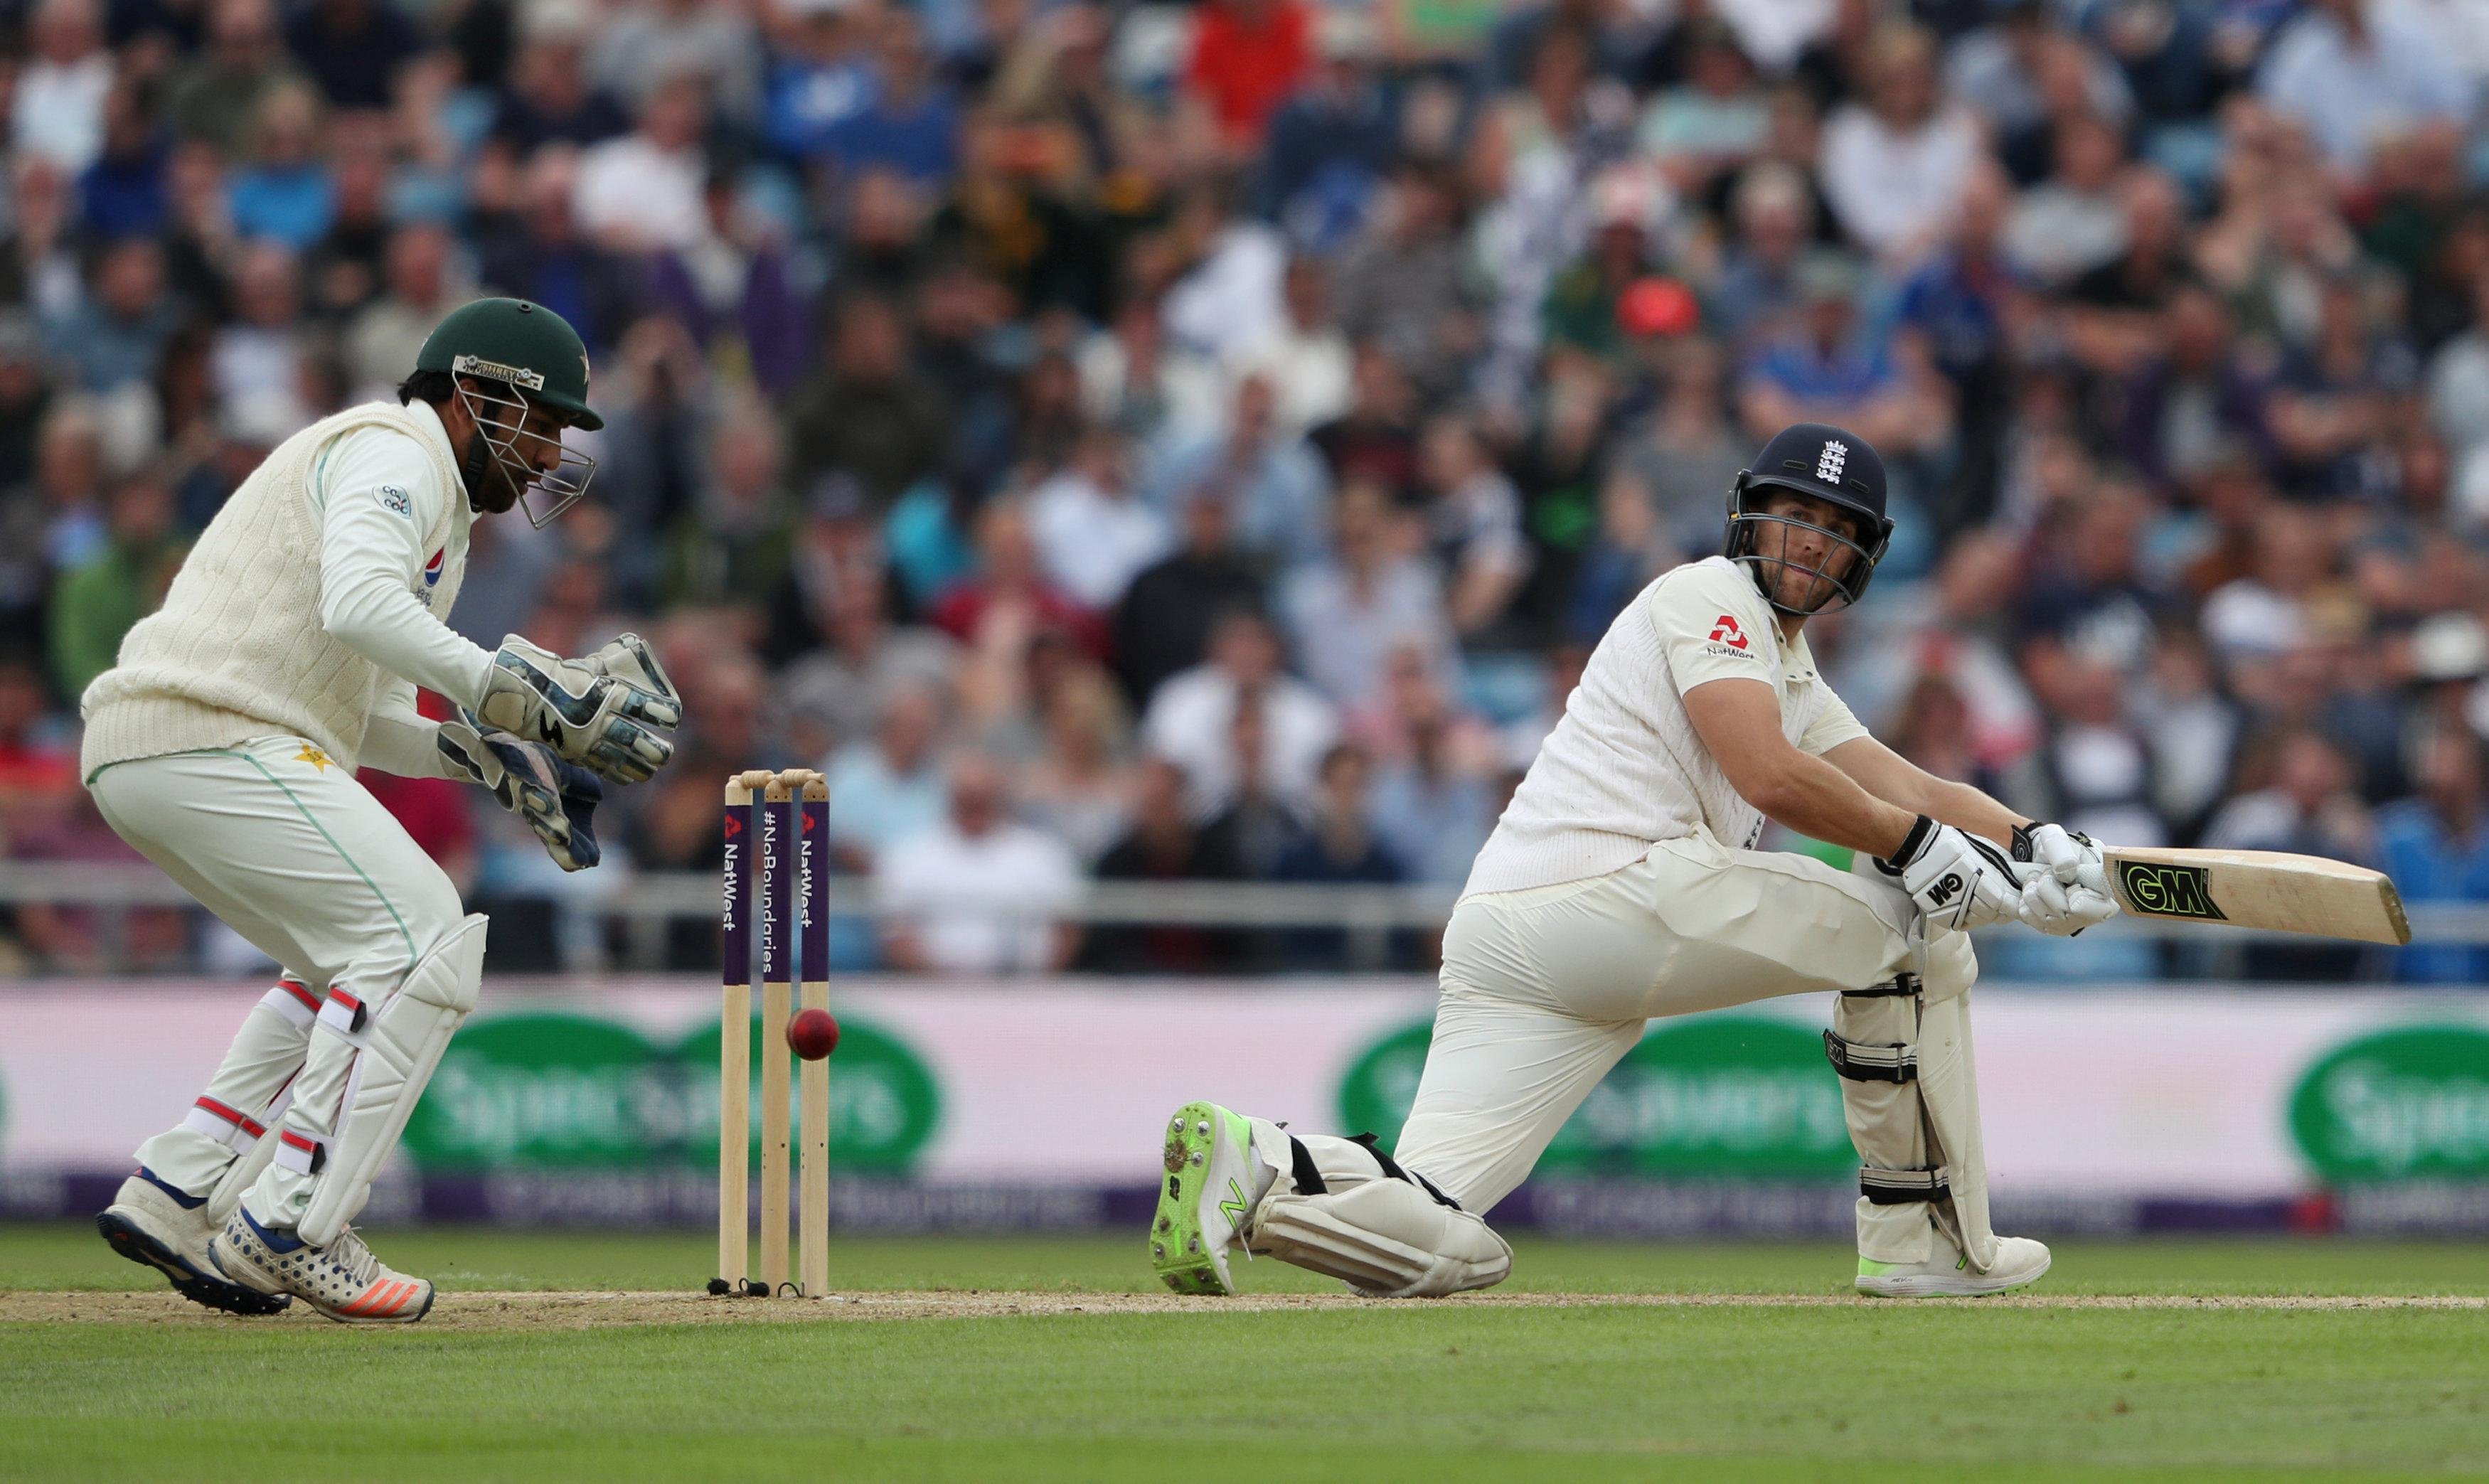 Dawid Malan plays a sweep shot on day two at Headingley